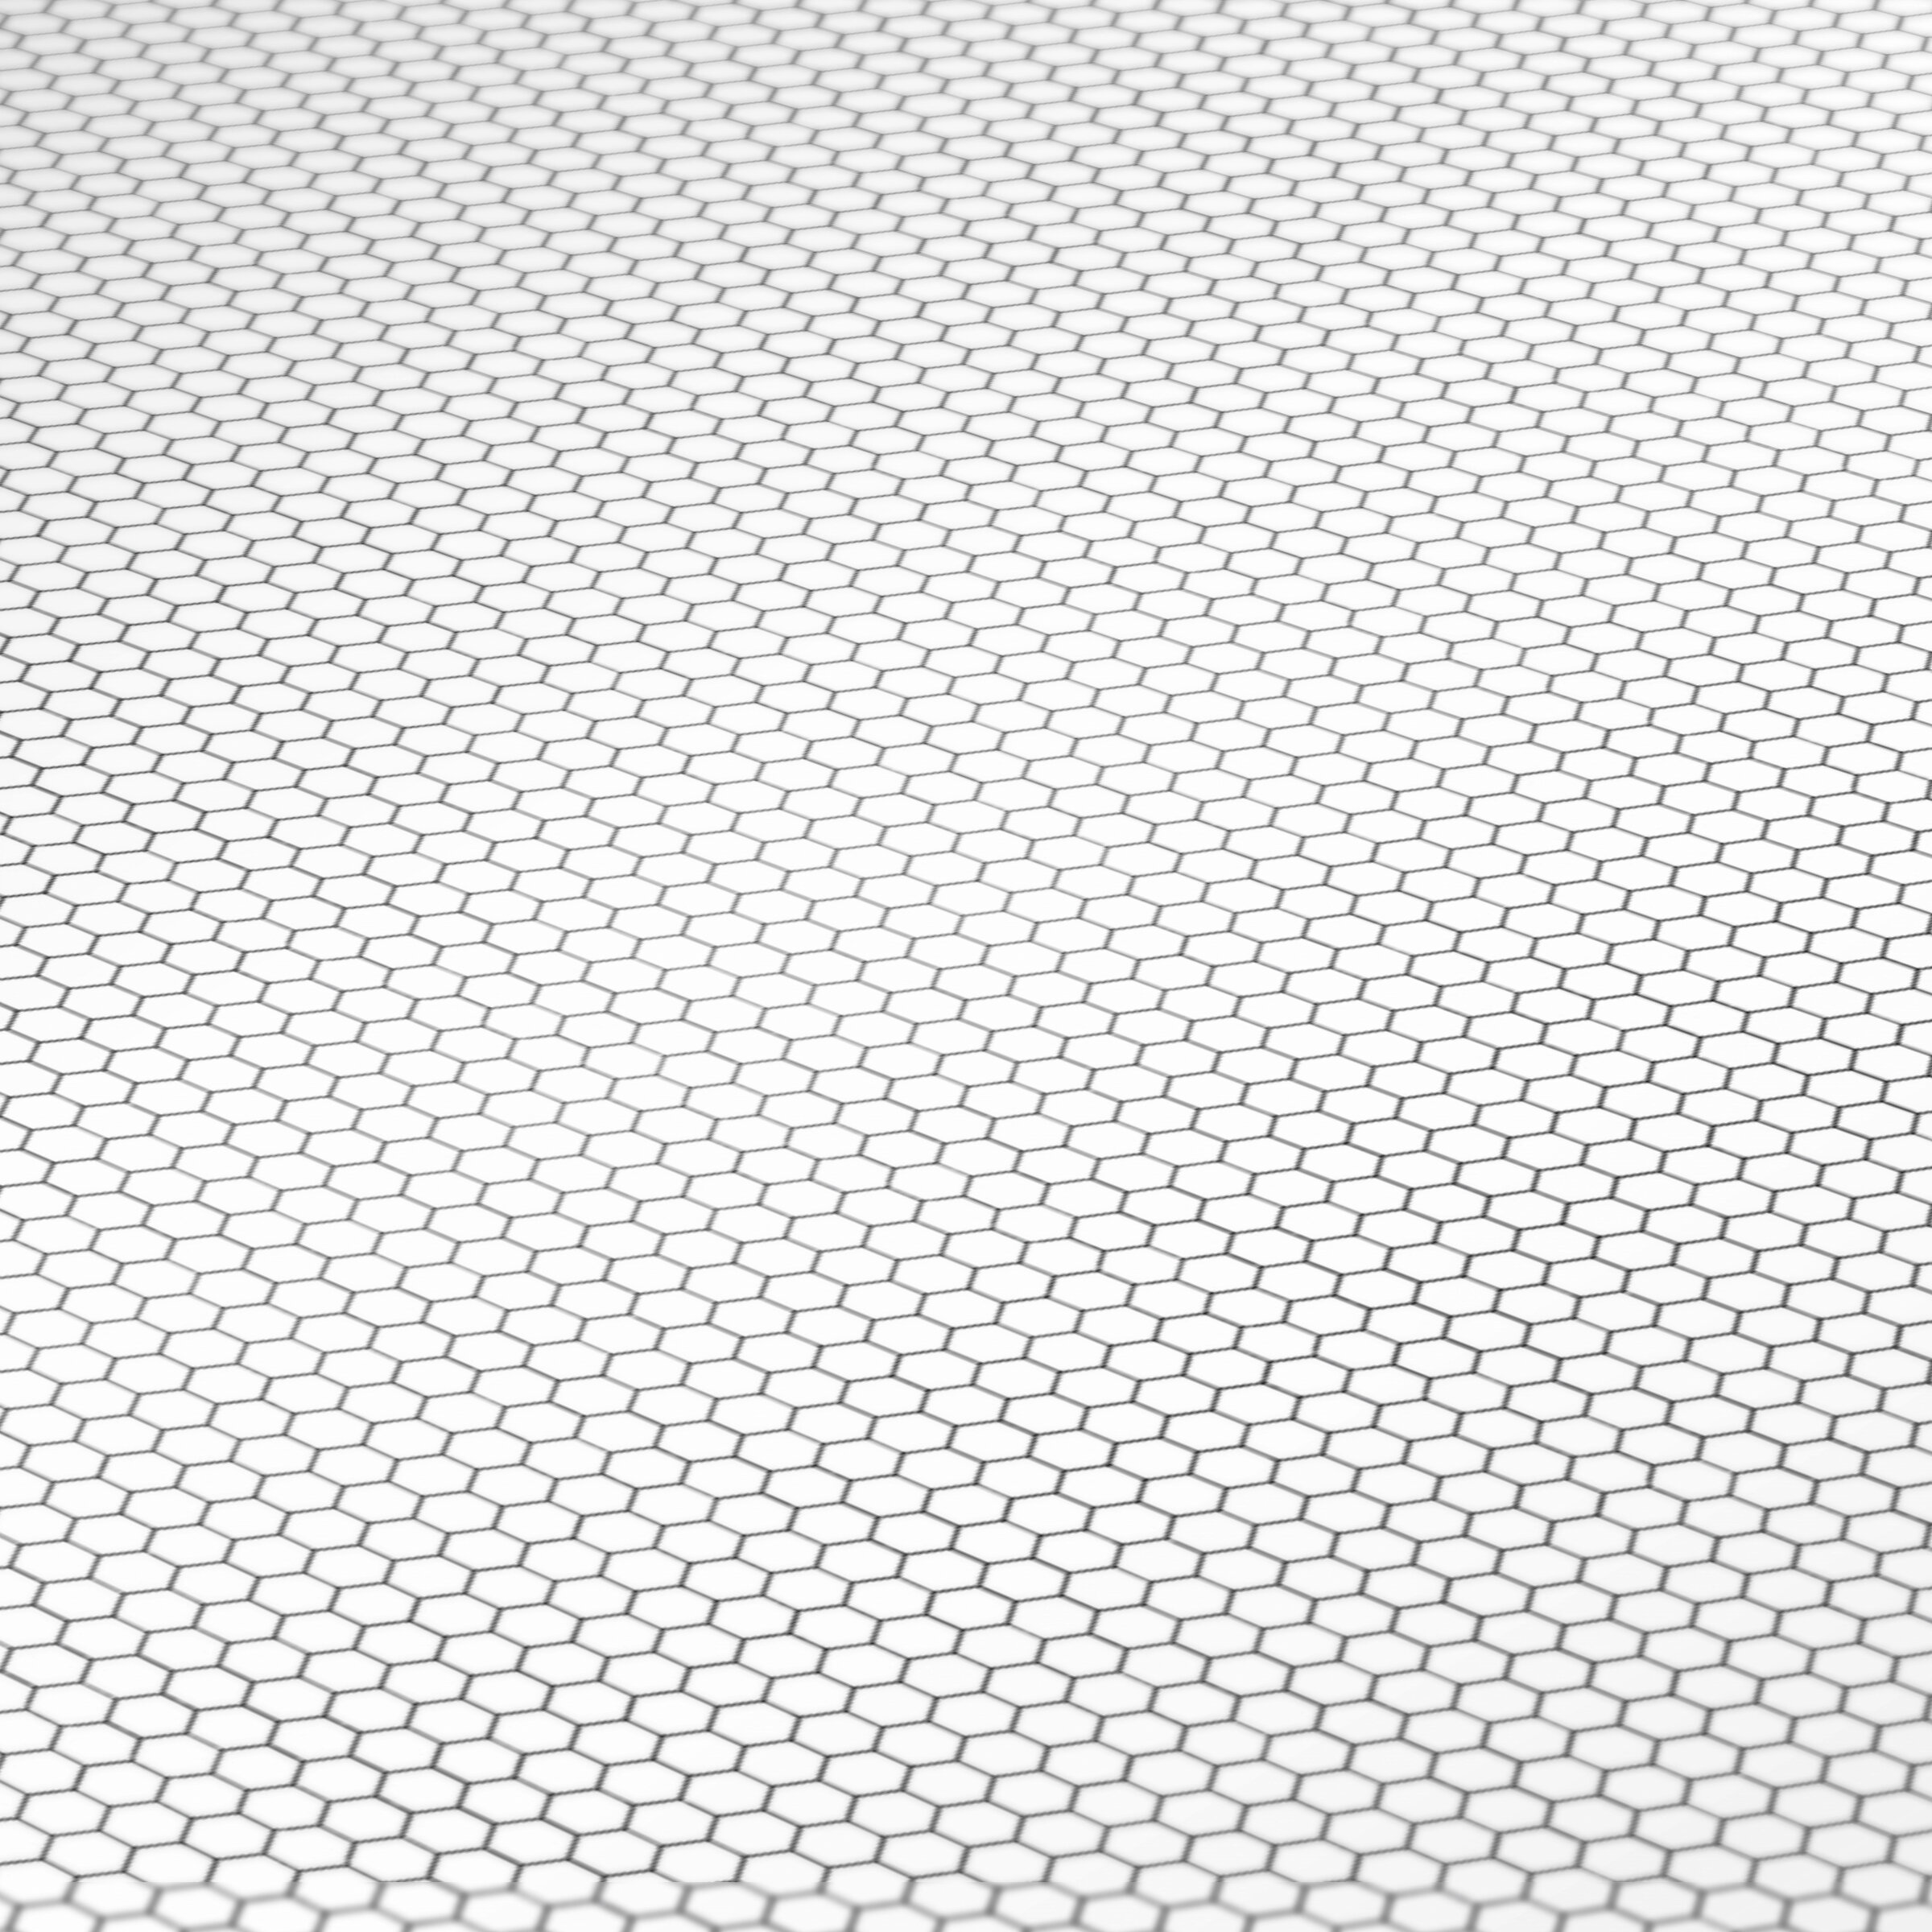 photo about Hex Paper Printable named White Hex Mosaic Tile Printable Jessica Cloe Miniatures